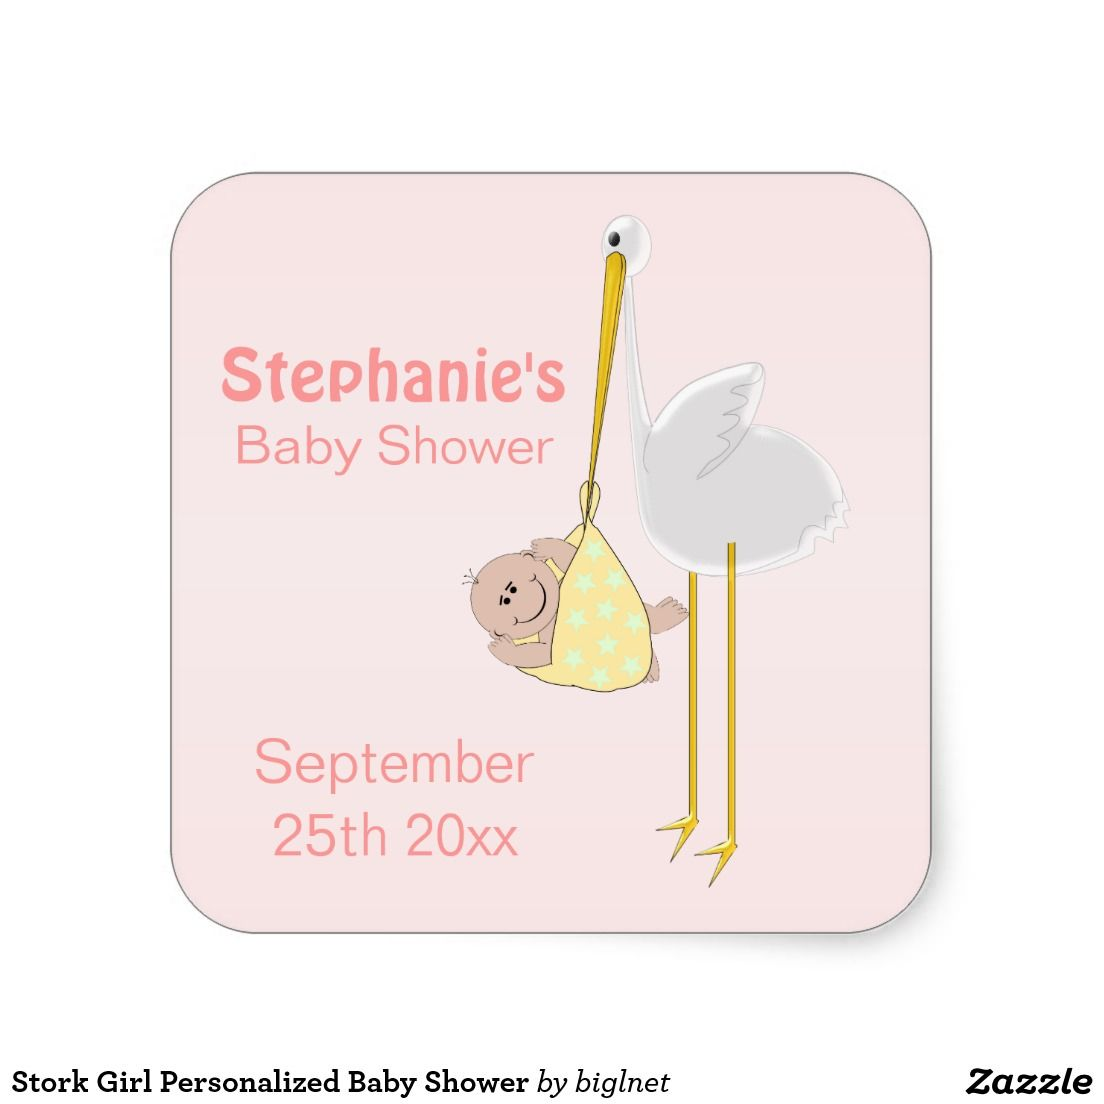 Stork Girl Personalized Baby Shower Square Sticker